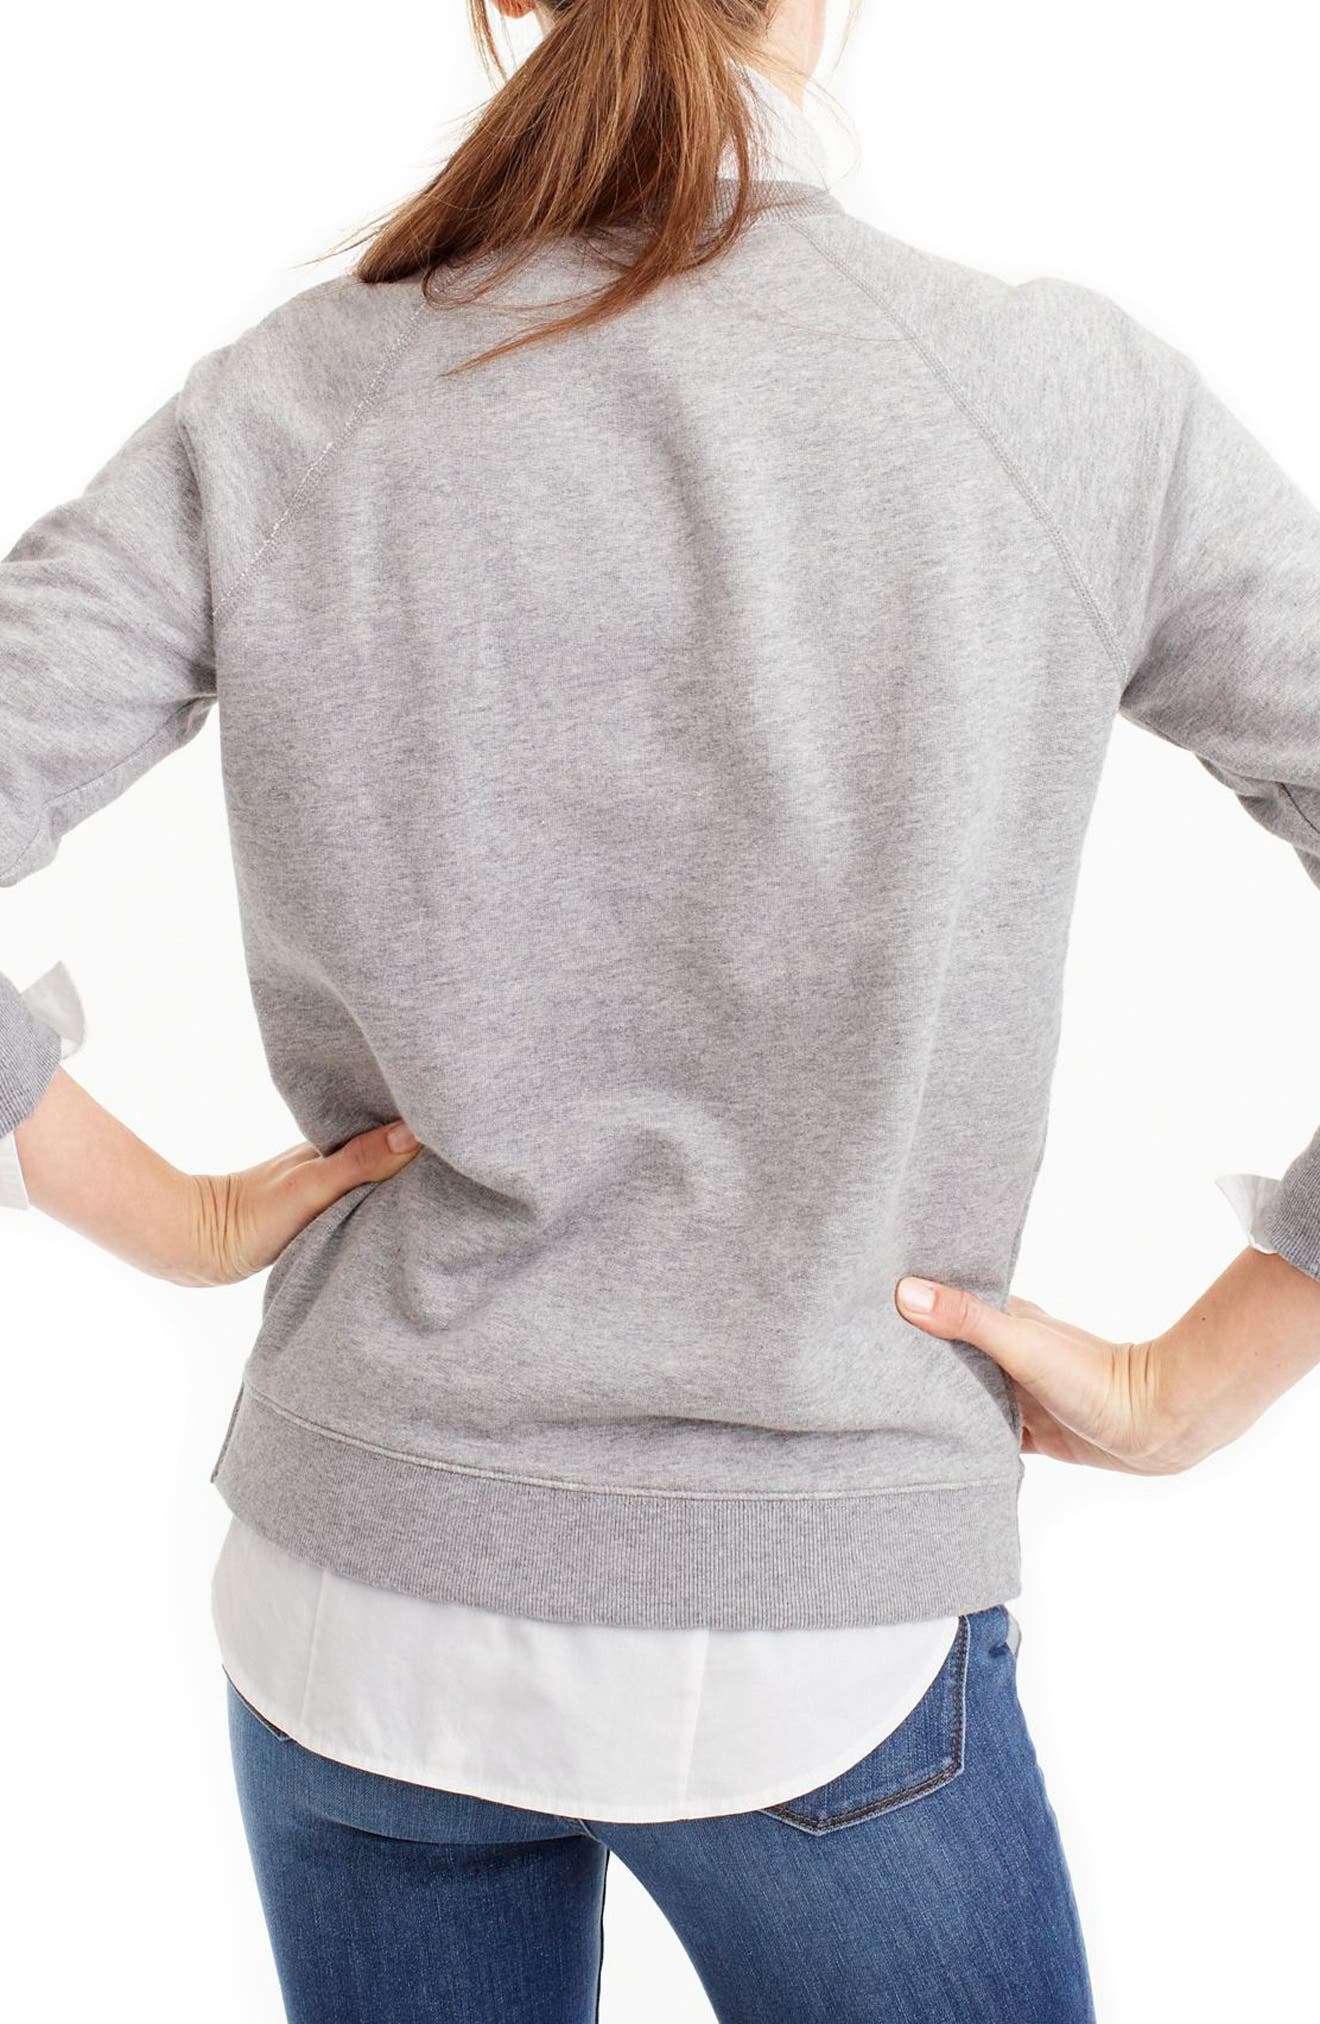 French Colors Sweatshirt,                             Alternate thumbnail 2, color,                             Heather Grey